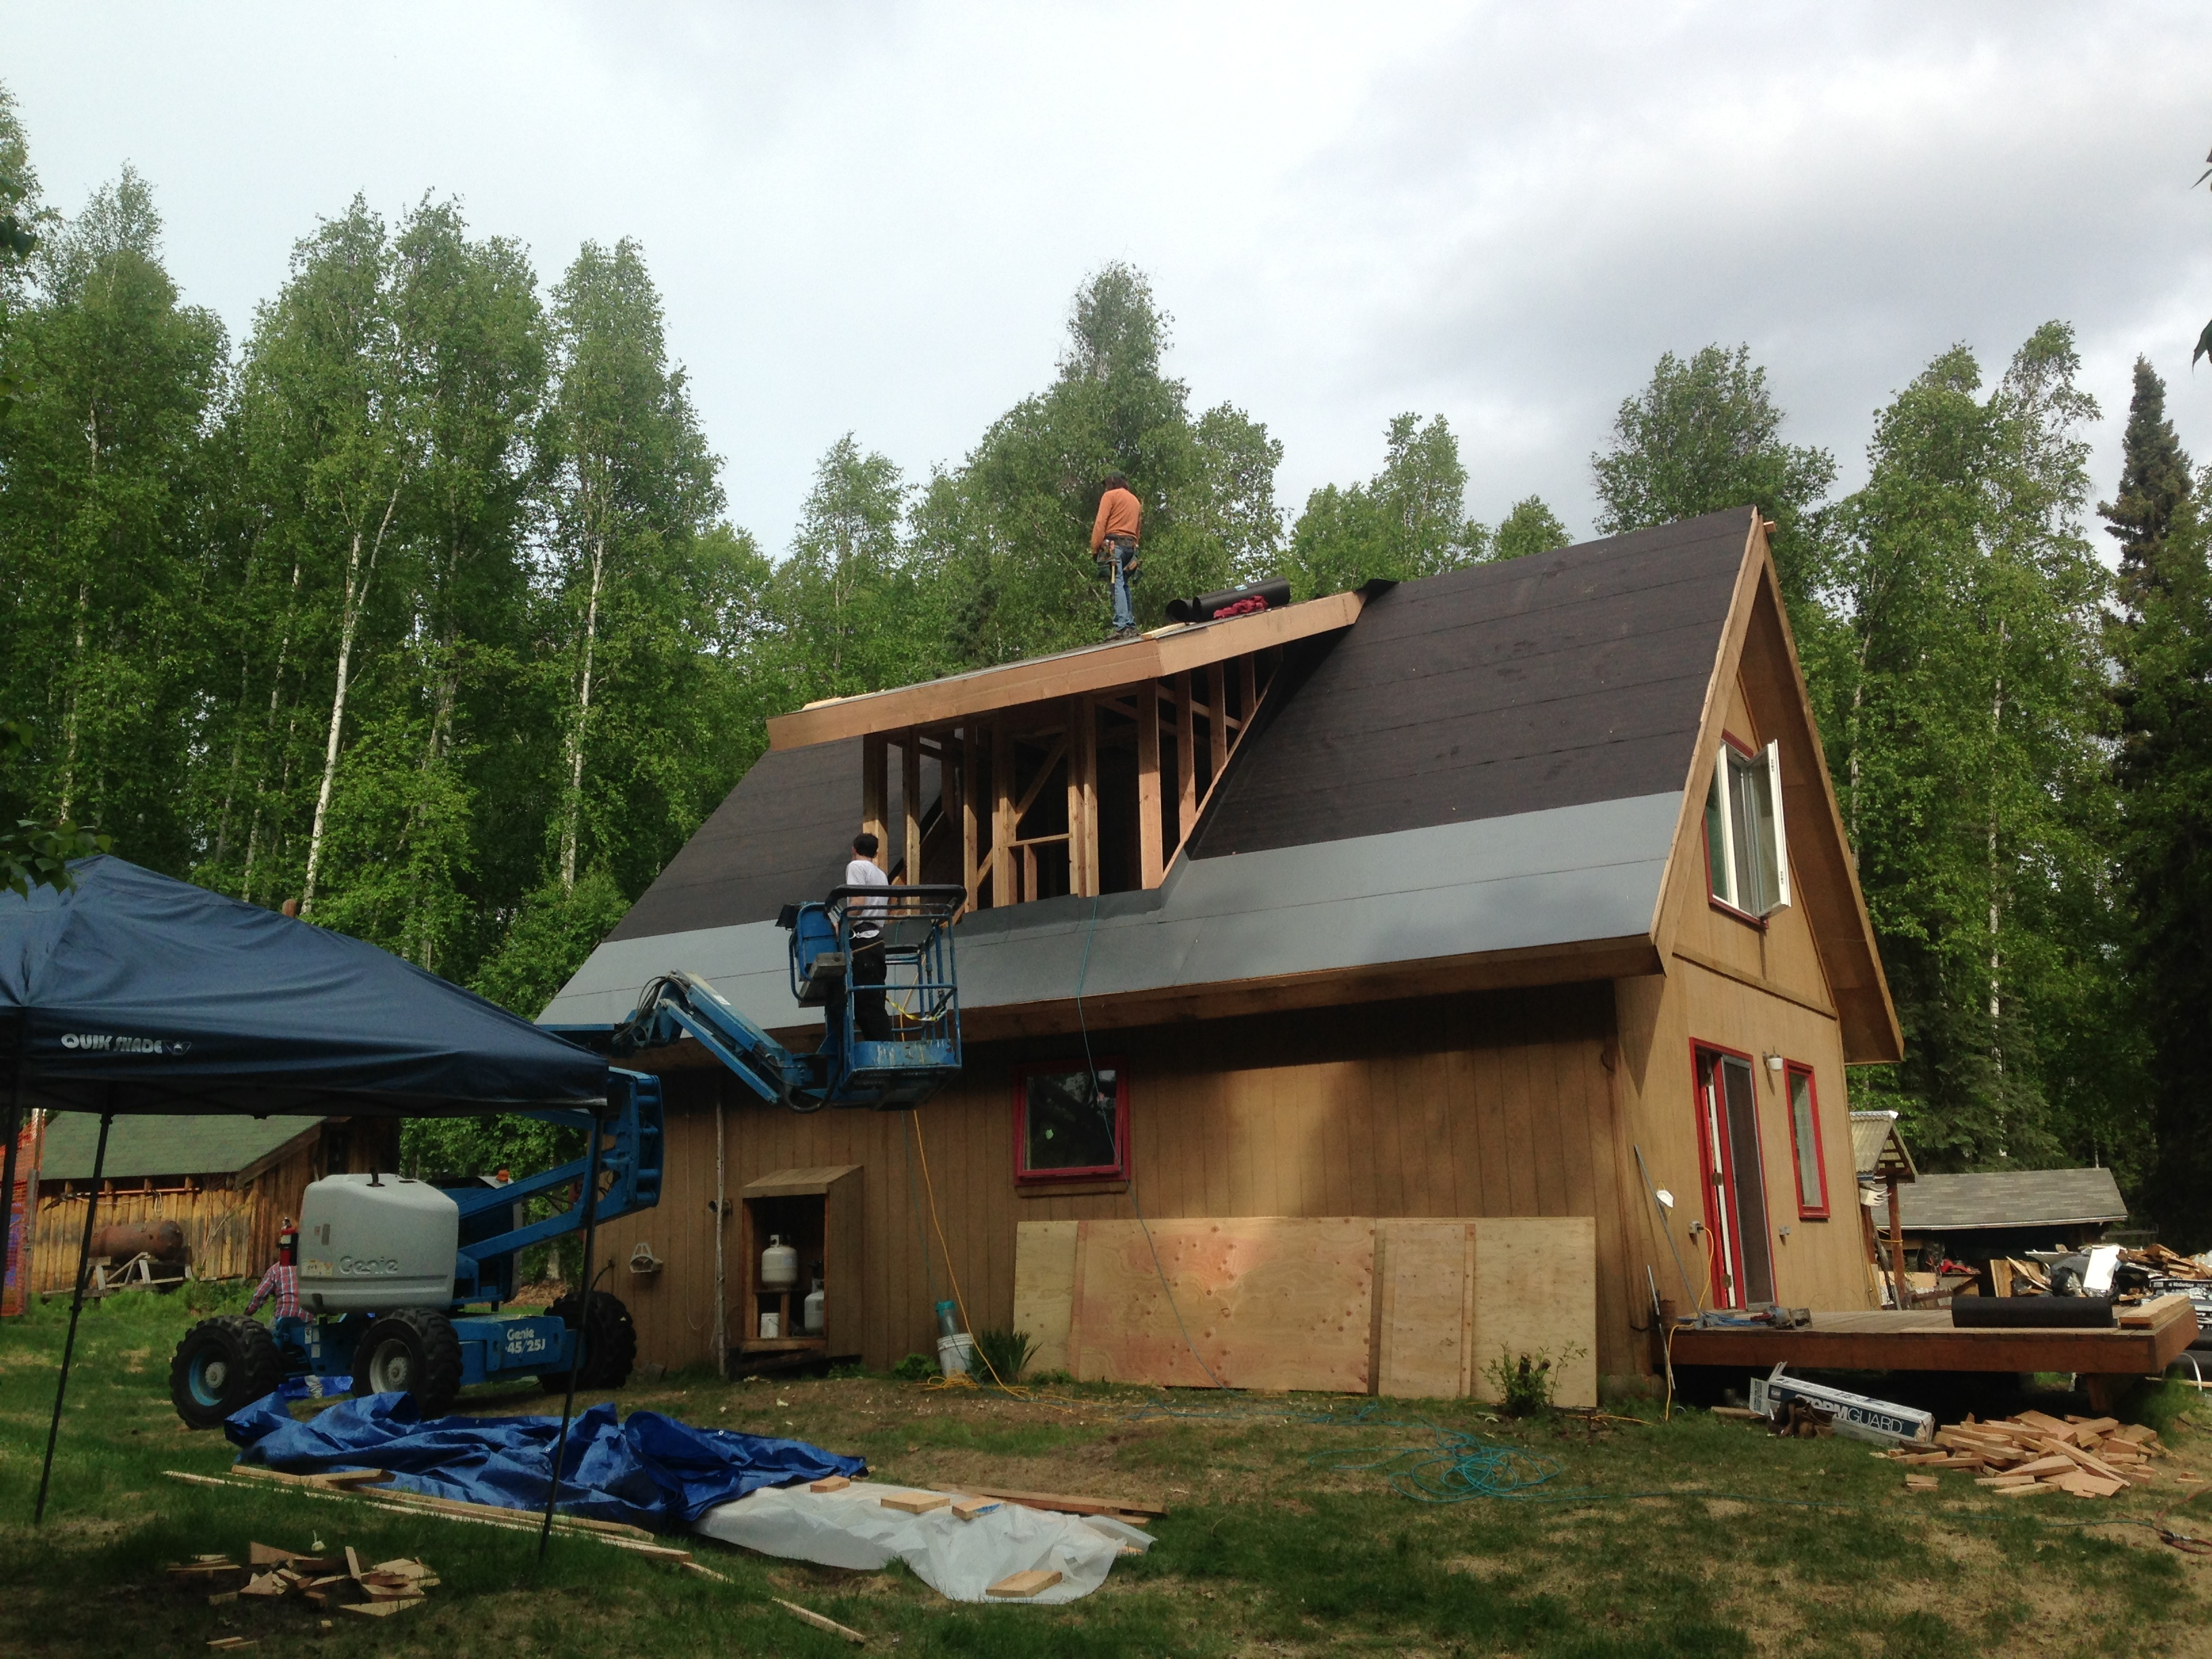 adding a bathroom dormer to a 12/12 roof in fairbanks alaska